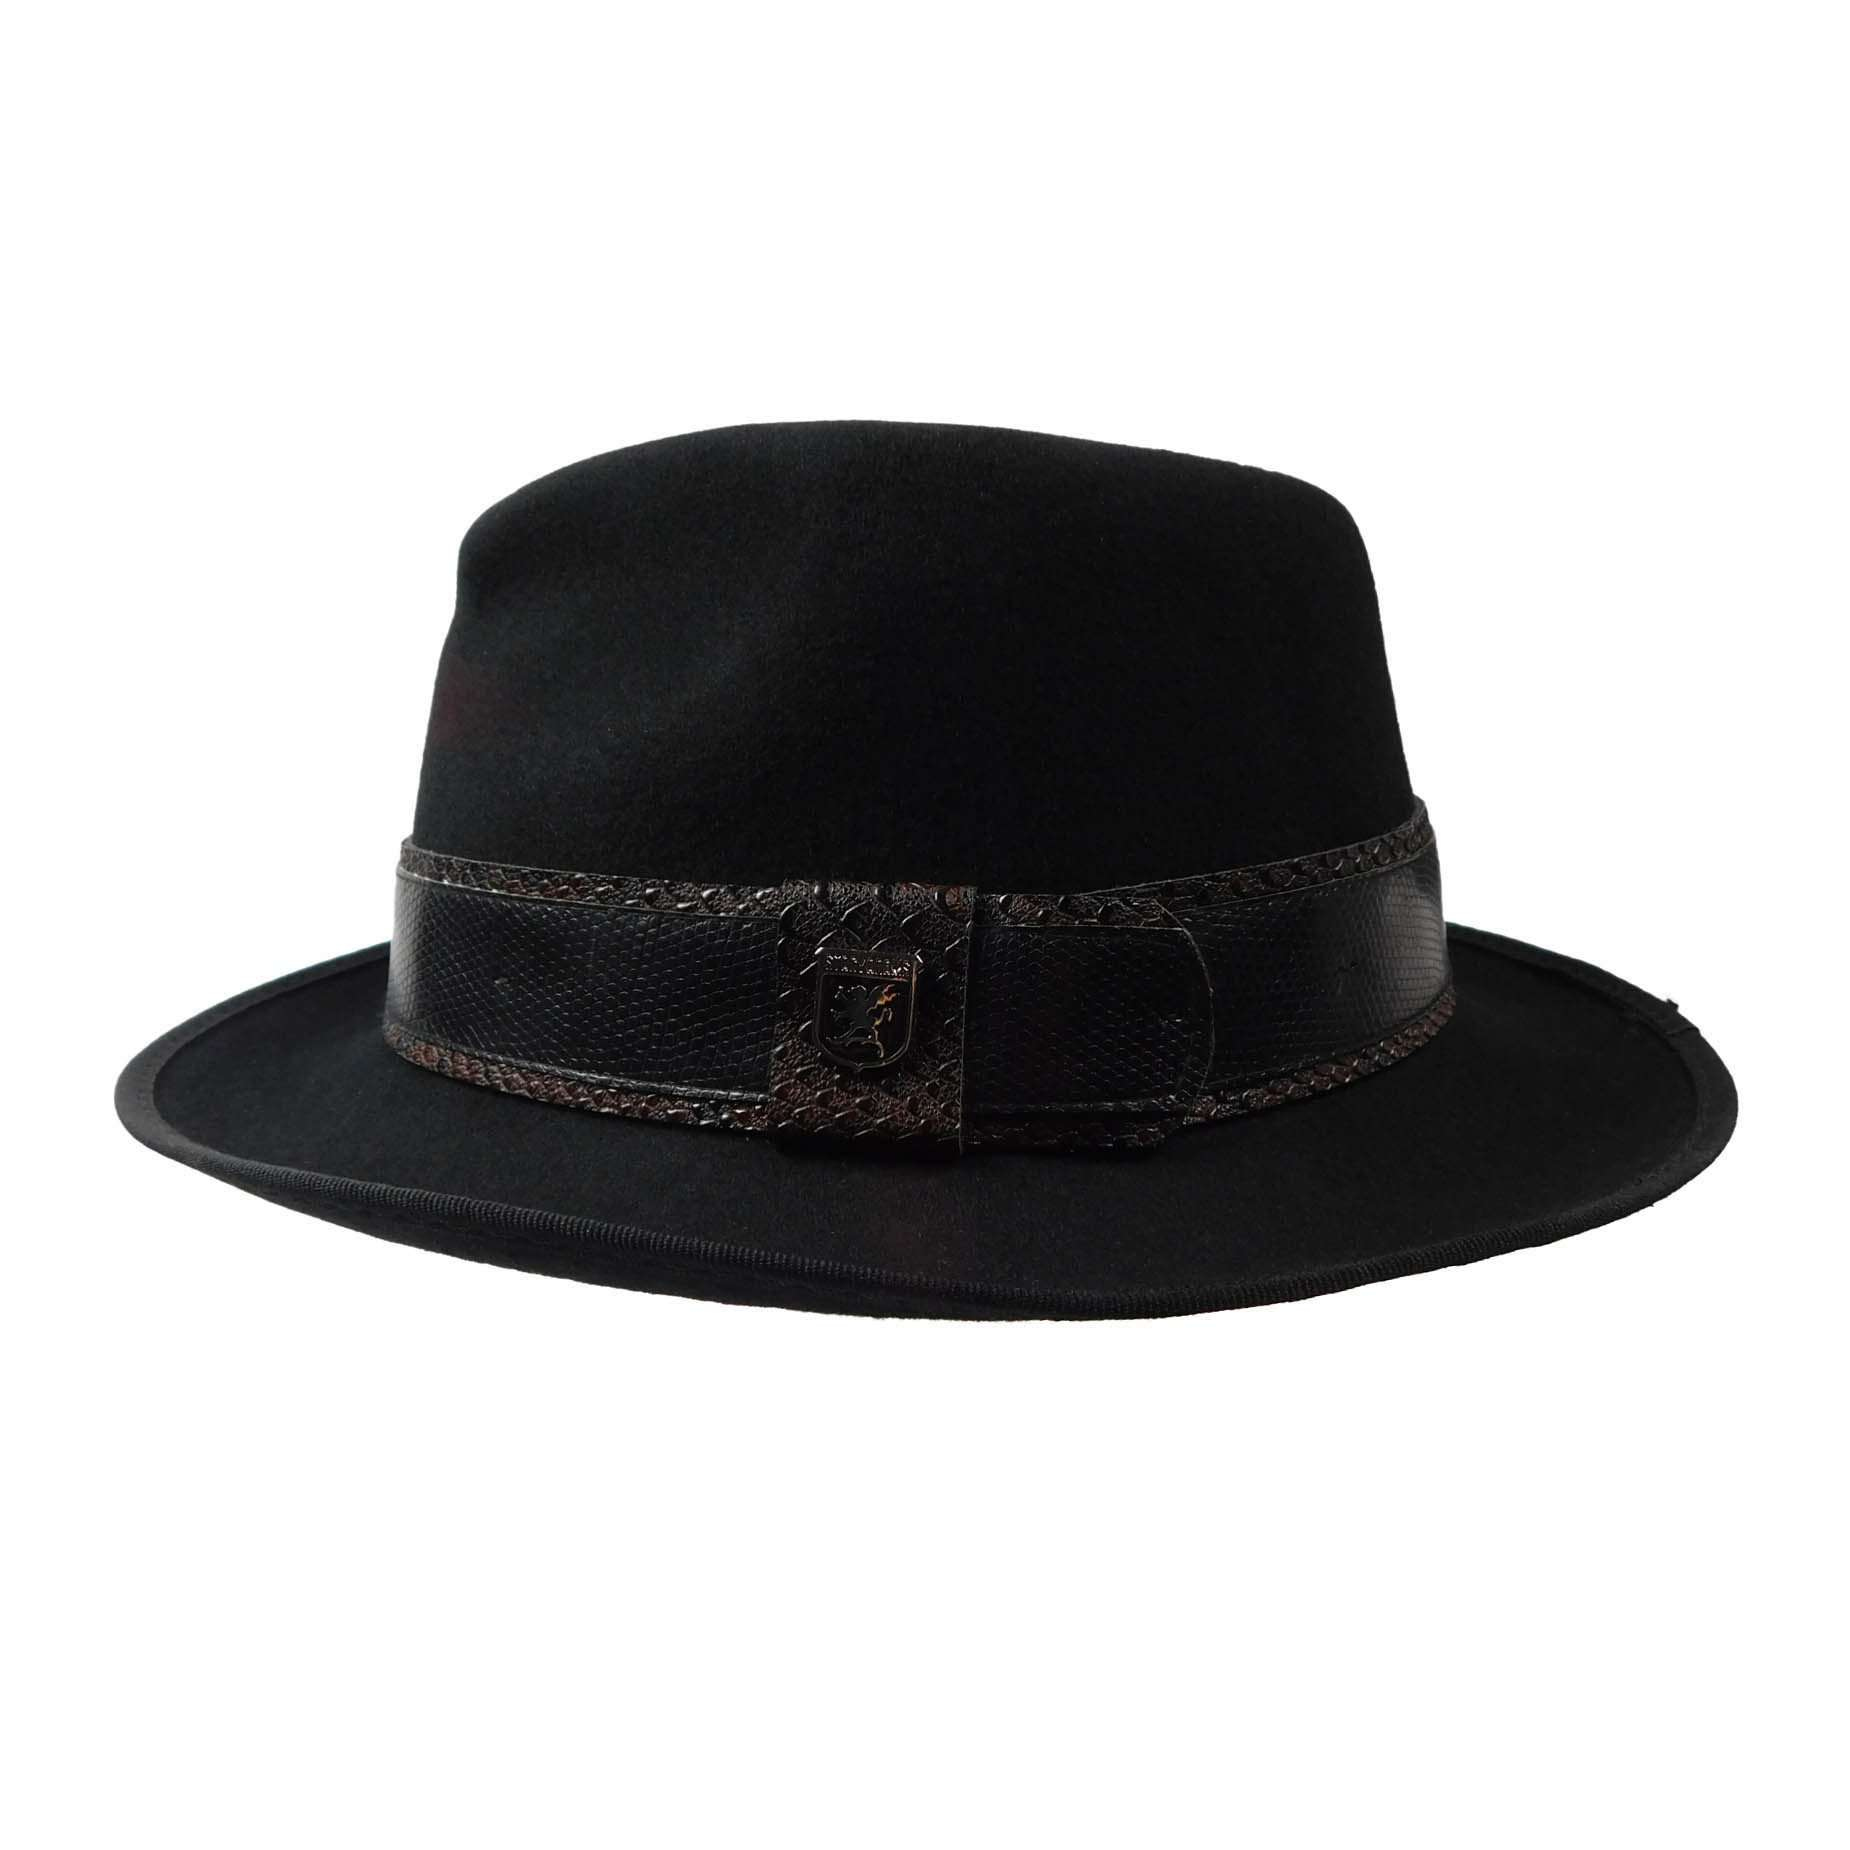 Stacy Adams Teardrop Fedora - Black  d32942e14aa